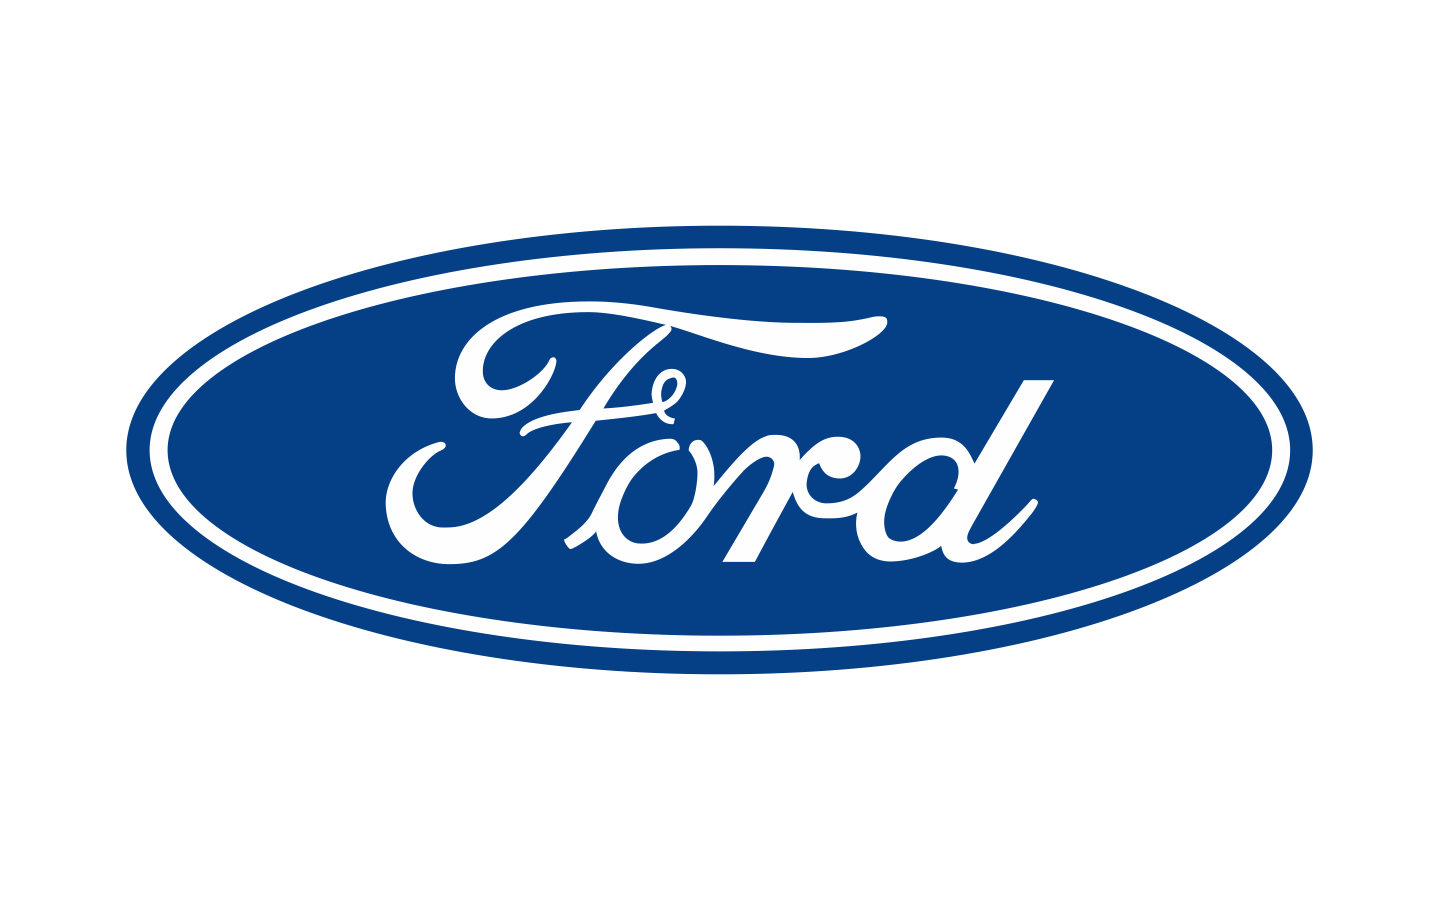 Ford Motor Company (F) has rebounded 7.5% since its low of $10.67